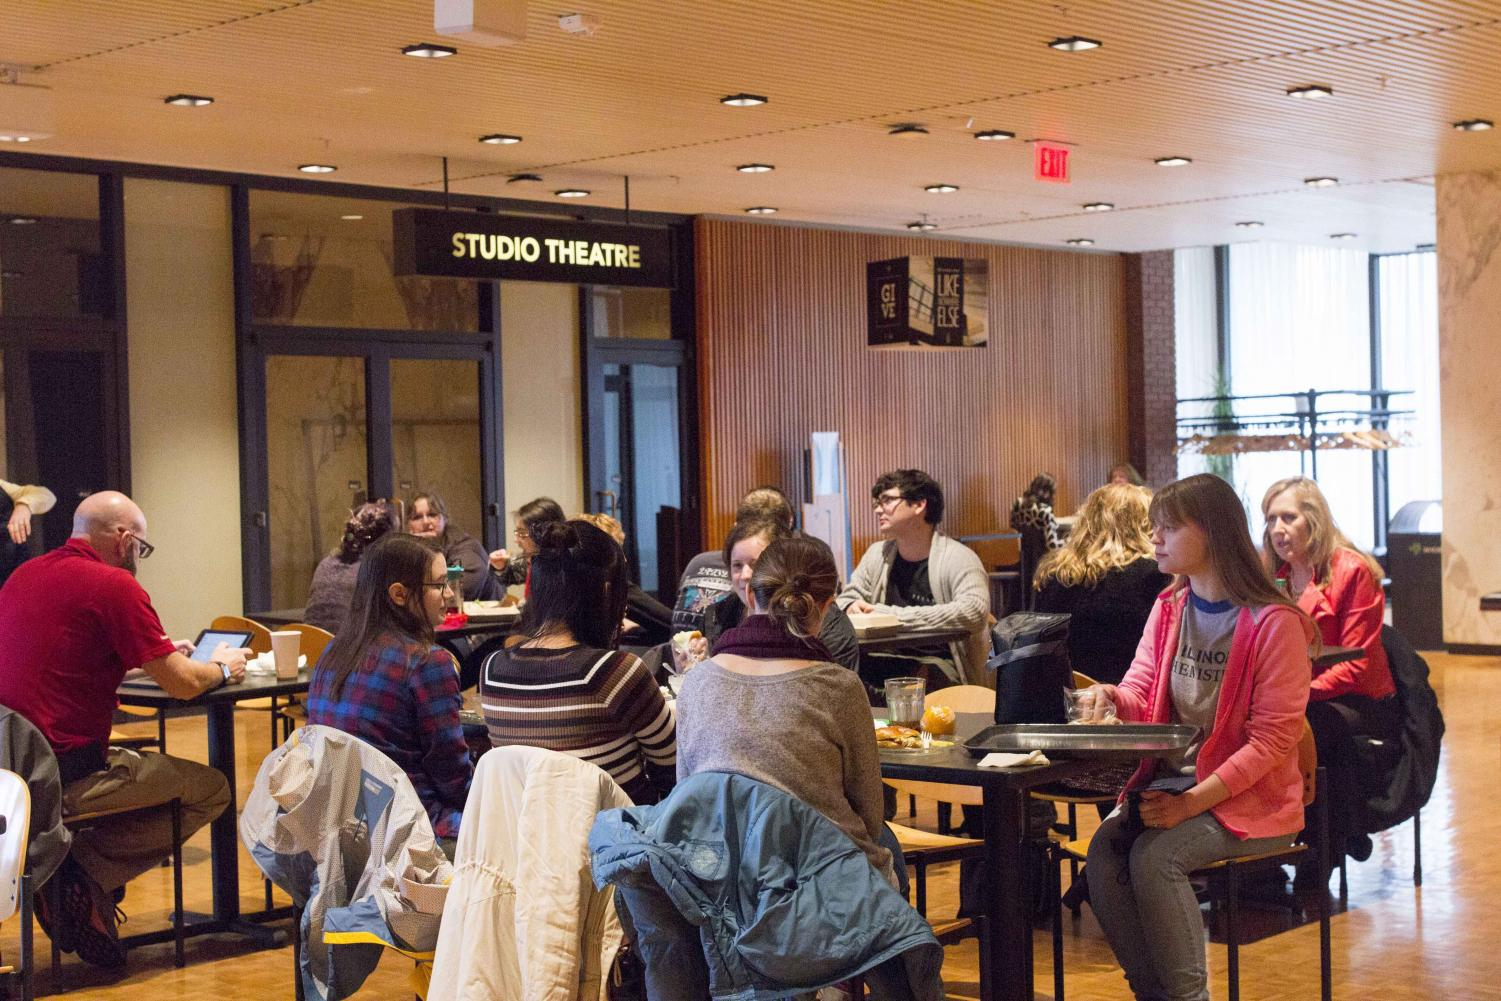 Students sitting outside of the Studio Theater in the Krannert Center located at 500 S Goodwin Ave in Urbana.